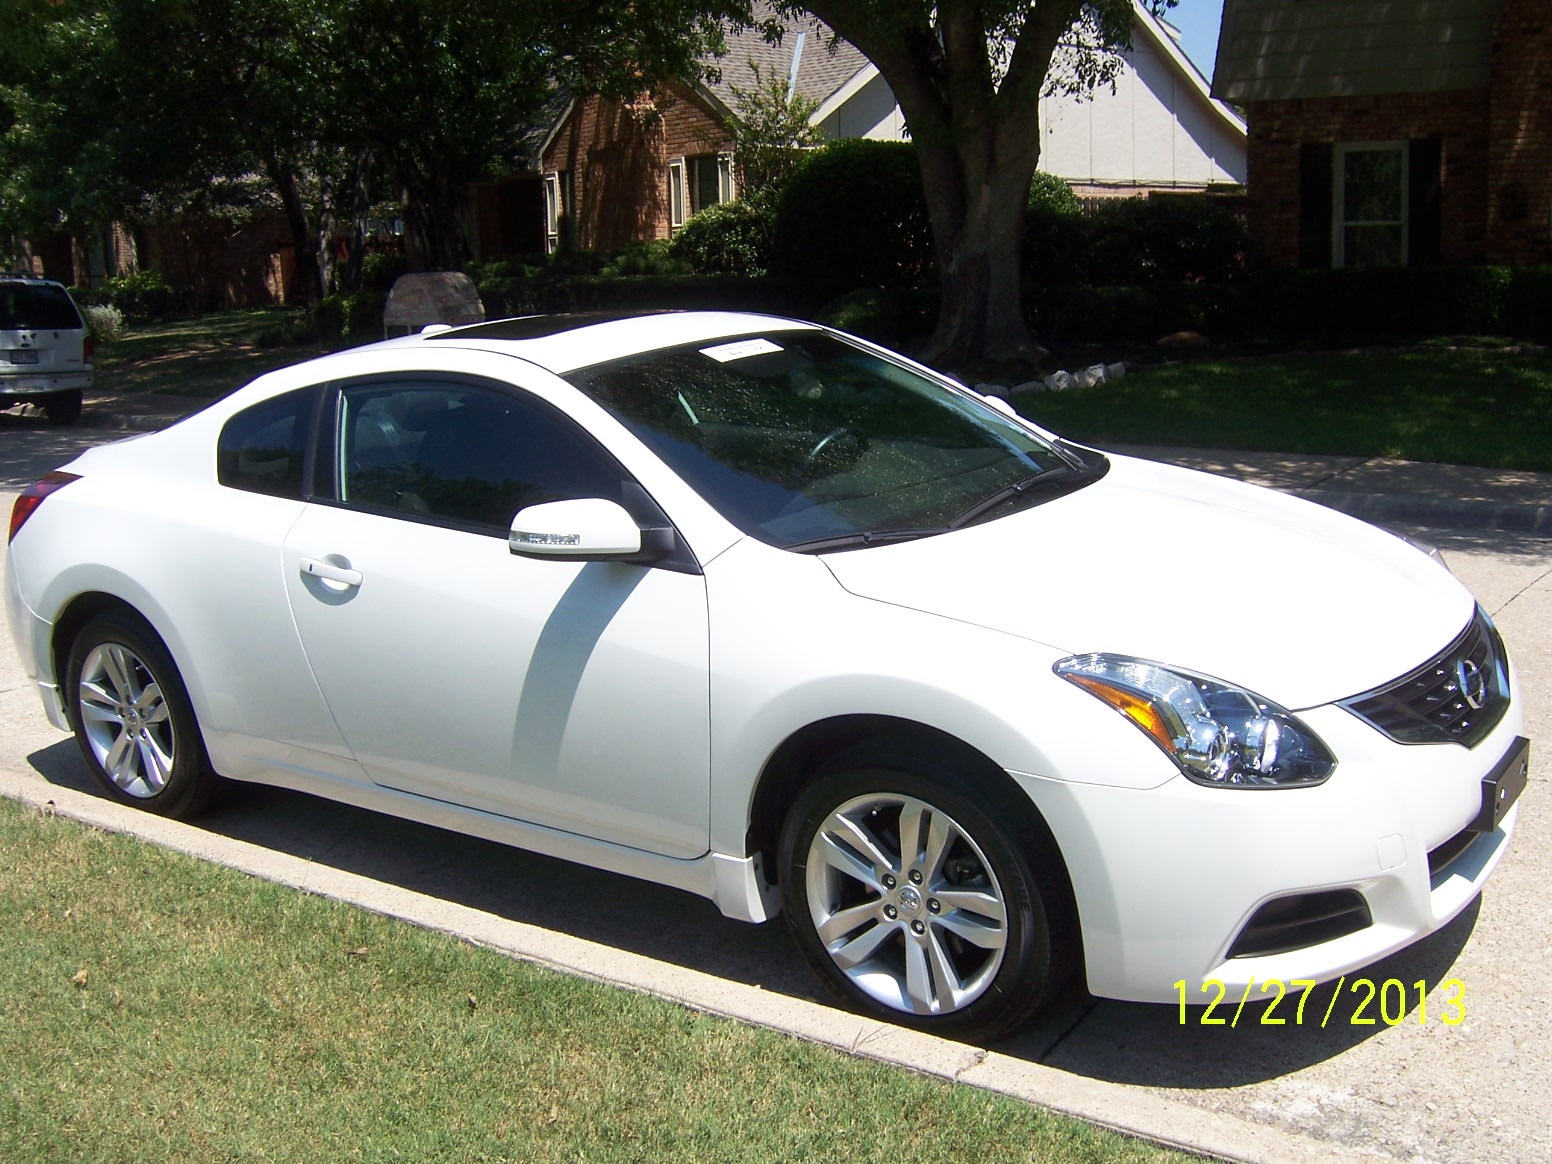 2012 Nissan Maxima Prices Specs Reviews Motor Trend Html Autos Post